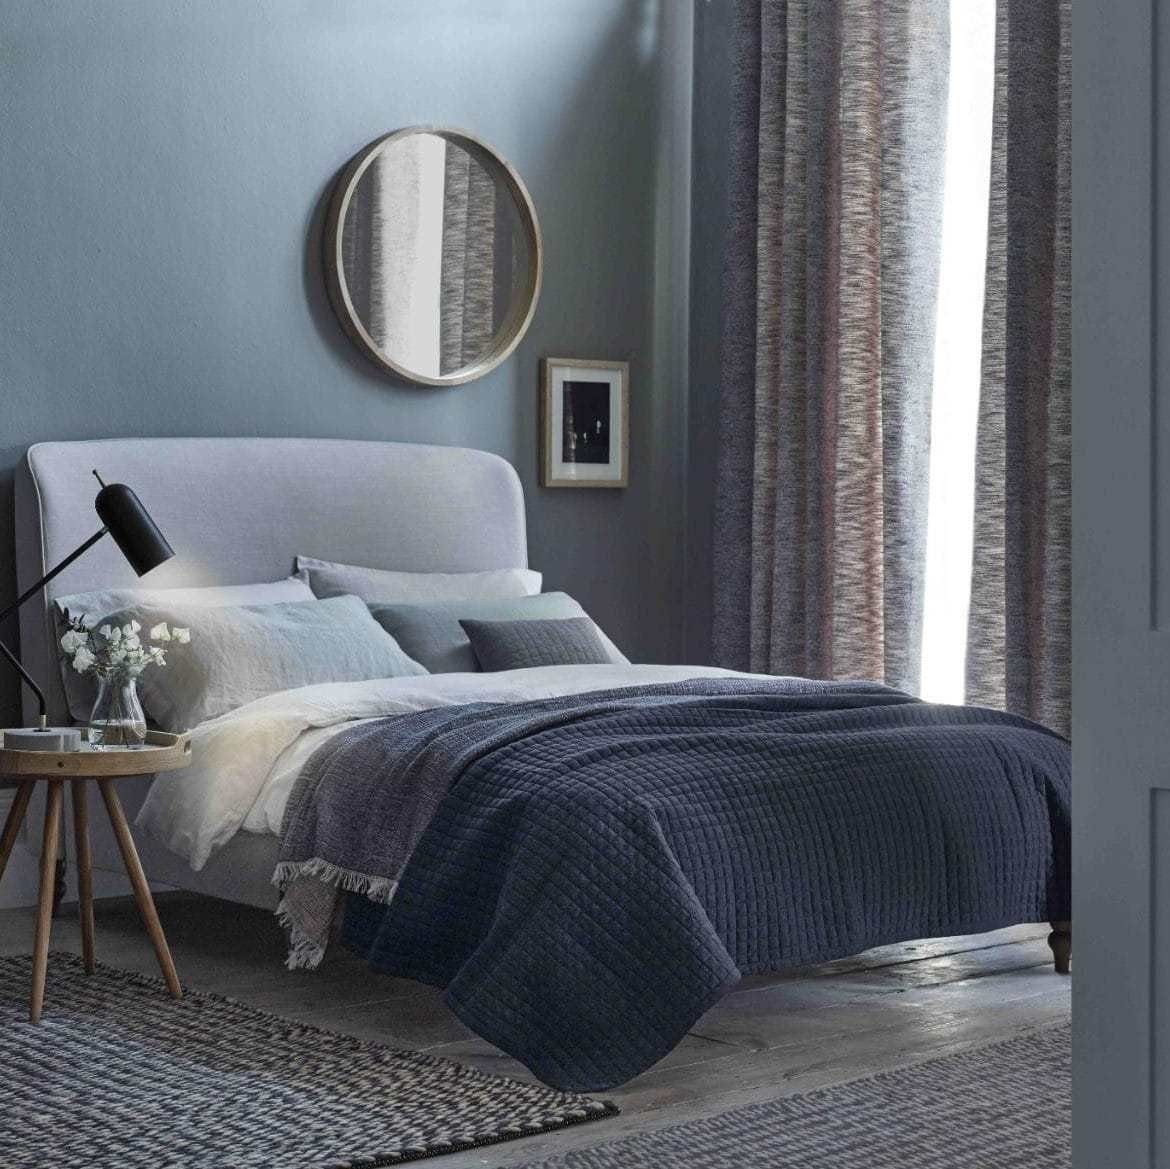 Best Can Interior Design Cure Insomnia How To Transform Your With Pictures